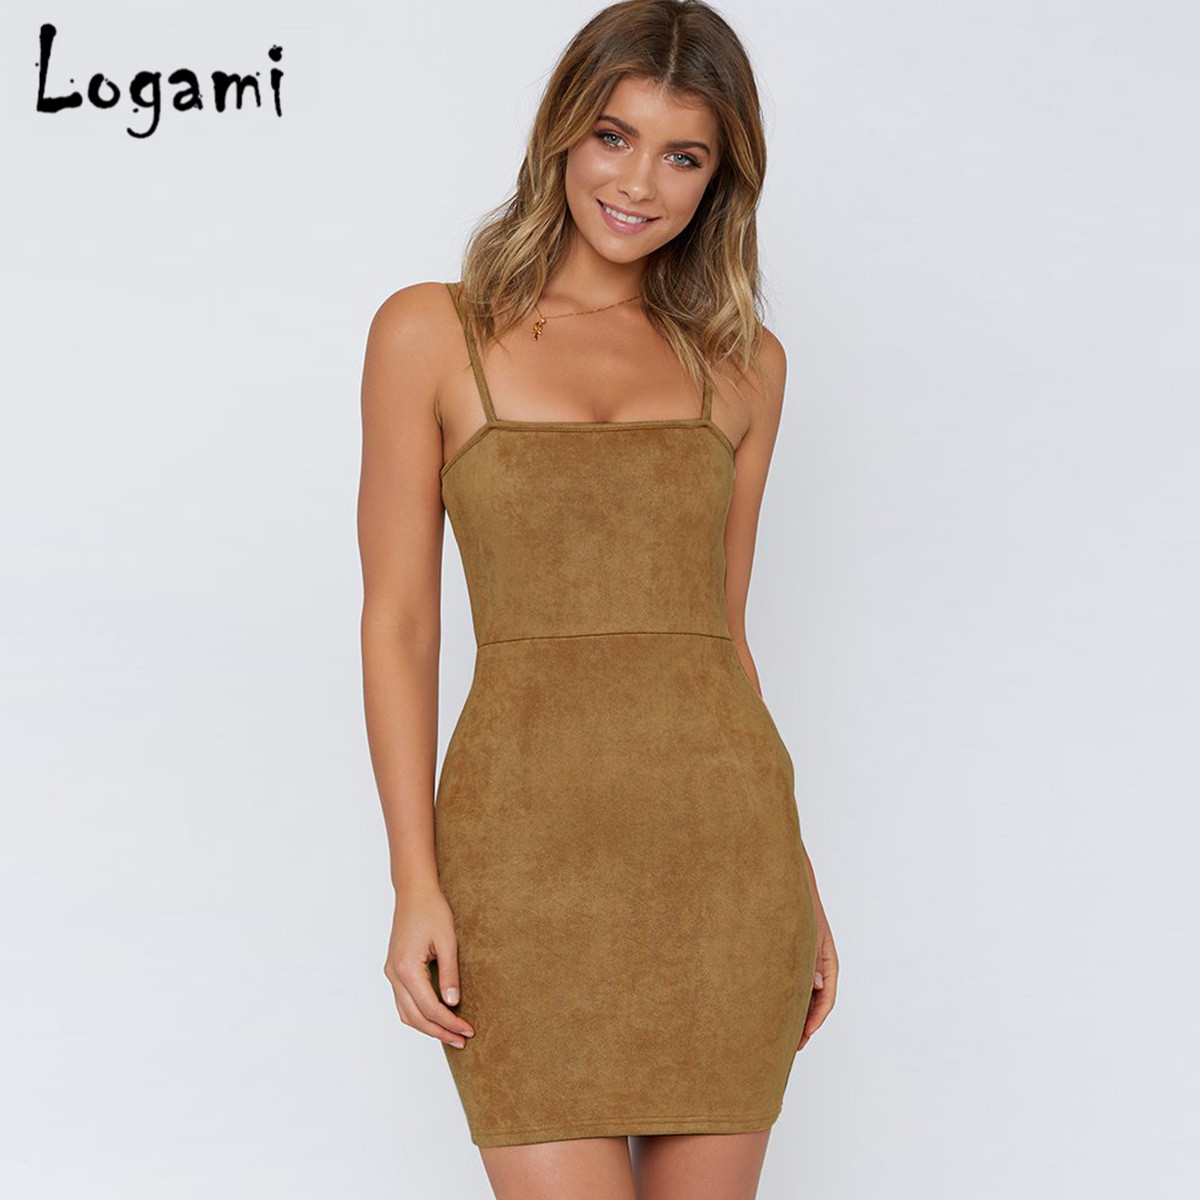 6d16b07f30a LOGAMI Sleeveless Sexy Suede Summer Dress Women 2018 Bodycon Mini Dresses  Ladies Elegant Party Dress